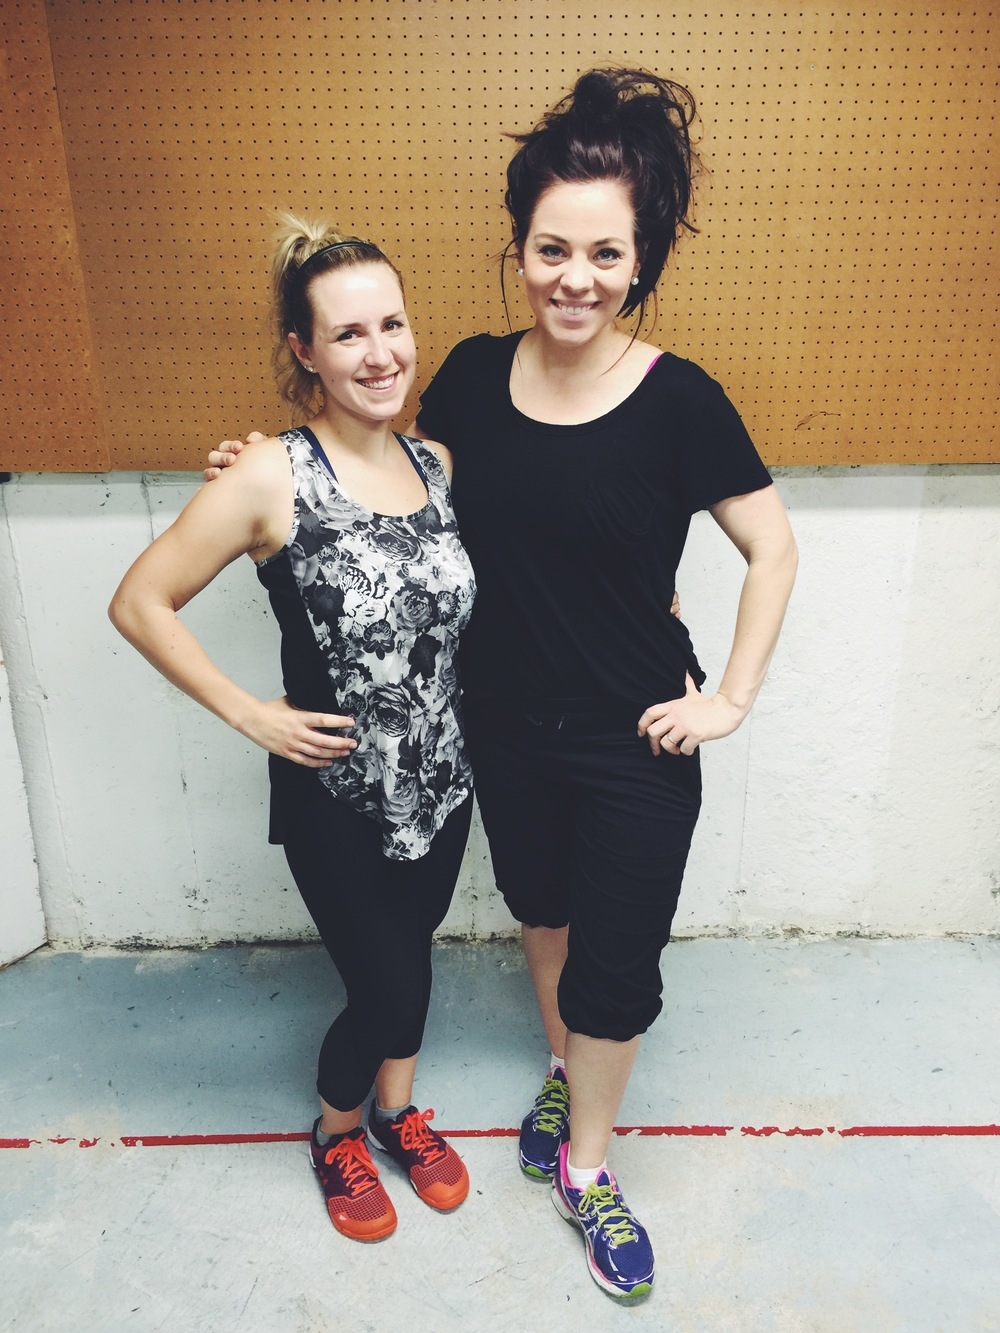 "Jaime firmed up all around and tackled killer leg workouts. She gained the confidence she needed to continue running after her goals.  ""You've brought me from 'I can't' to 'more'. The physical change is great but the mental change has had the greatest impact in my life. I'm not intimidated by my goals anymore!"" - Jaime"